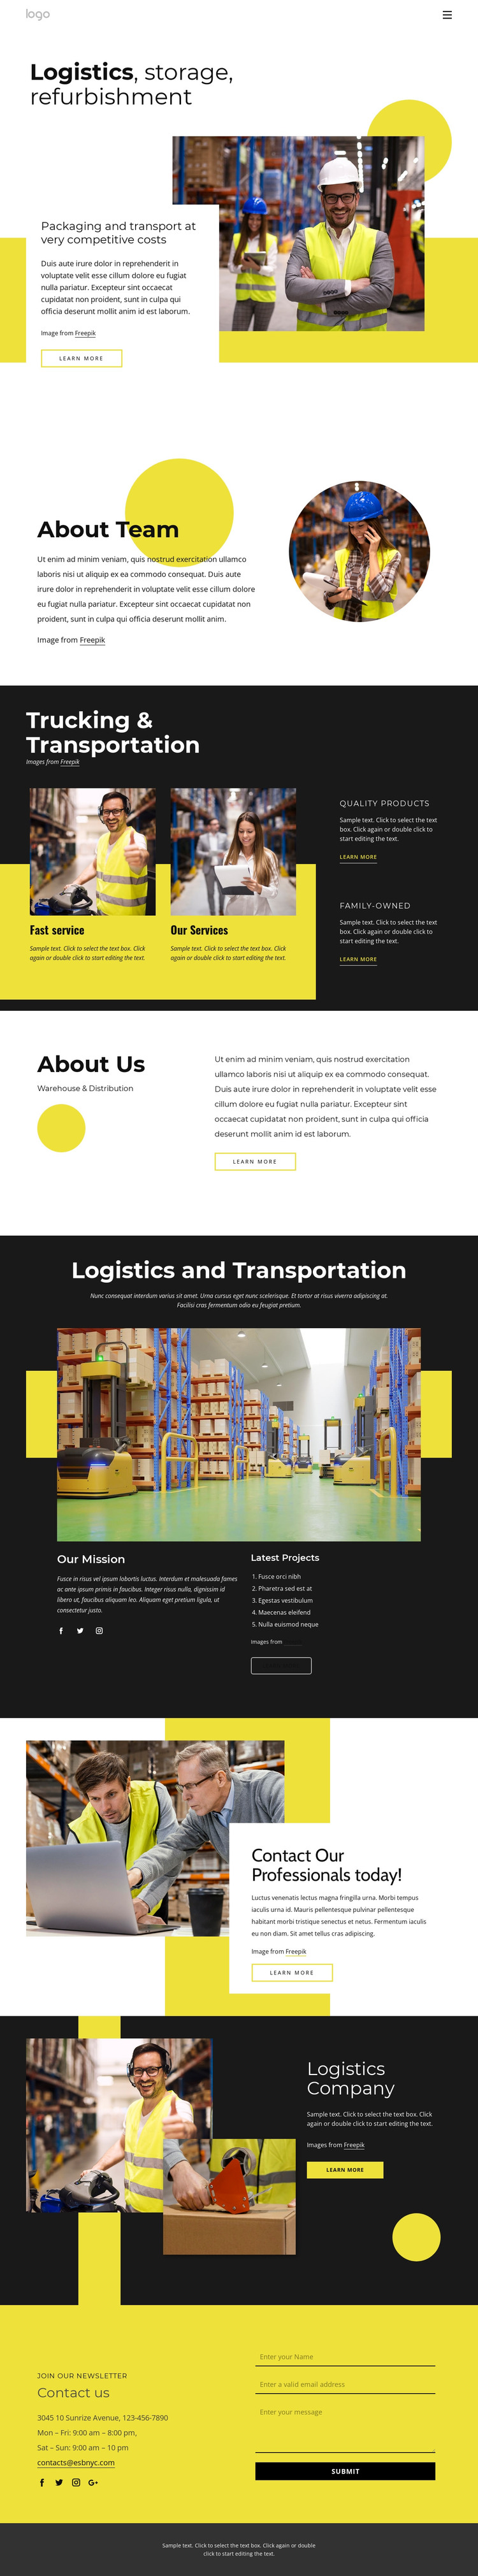 Contact our professionals today HTML Template